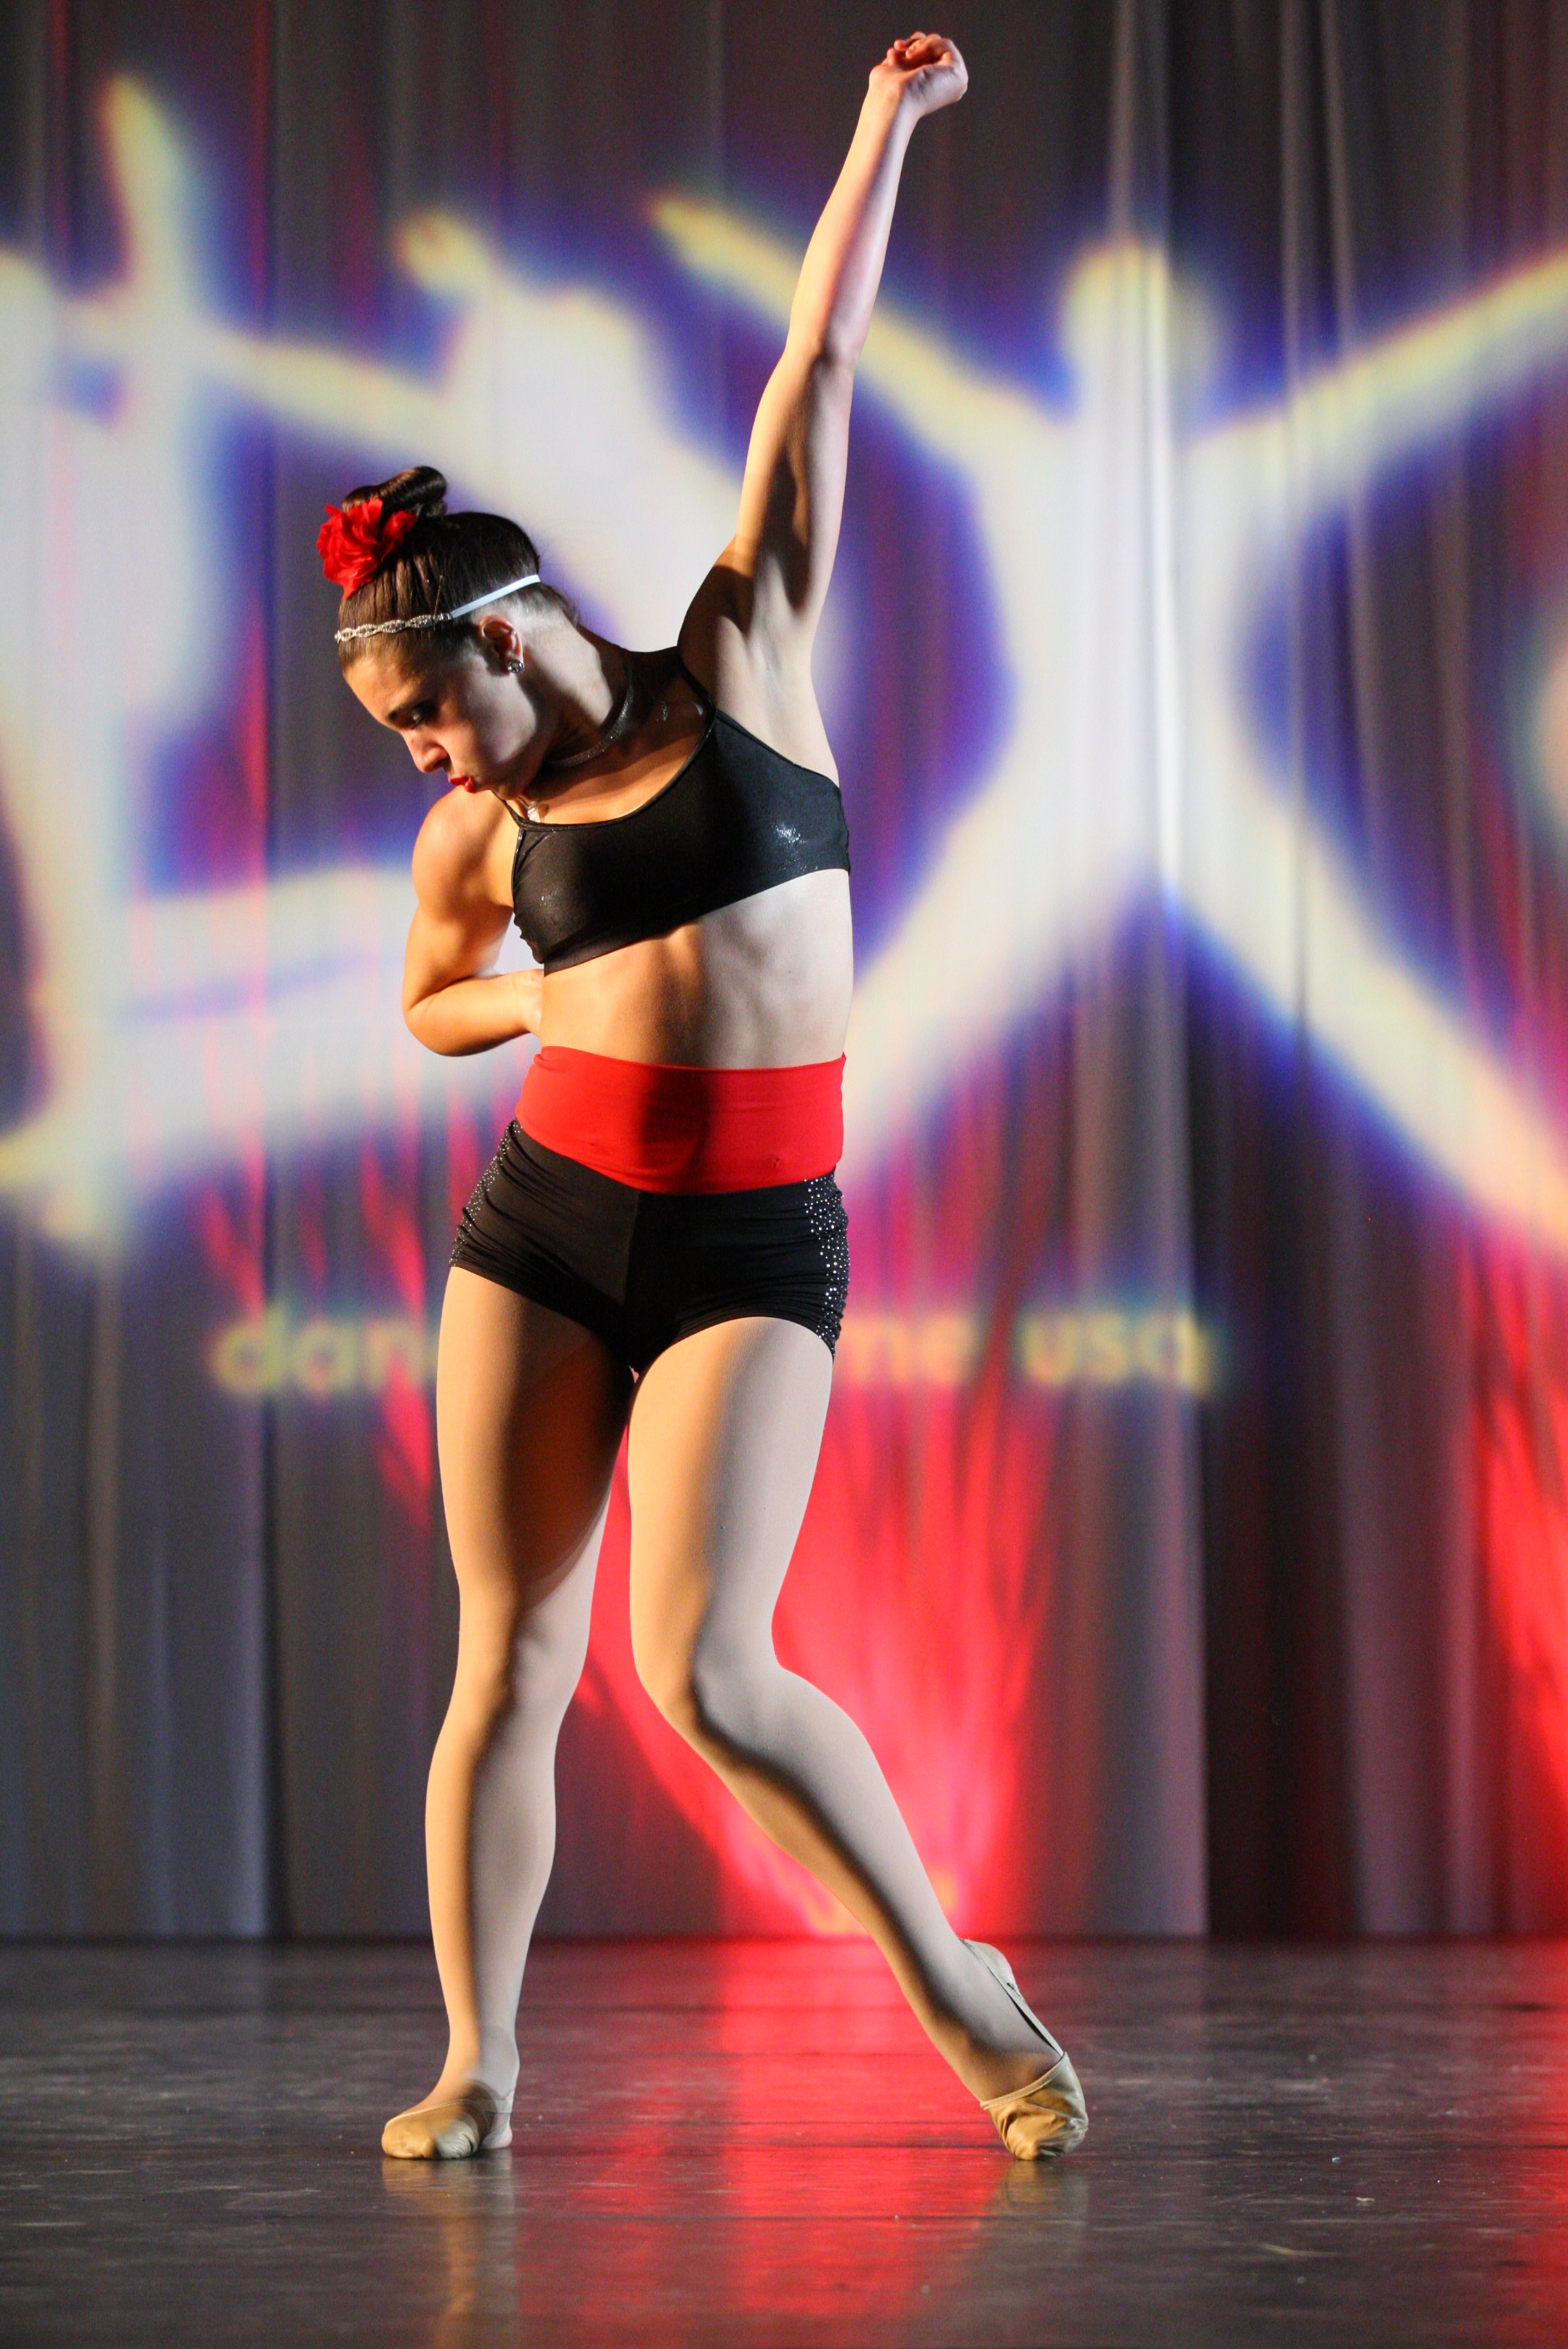 2013 - Anna Kate Nieman from Champion Legacy